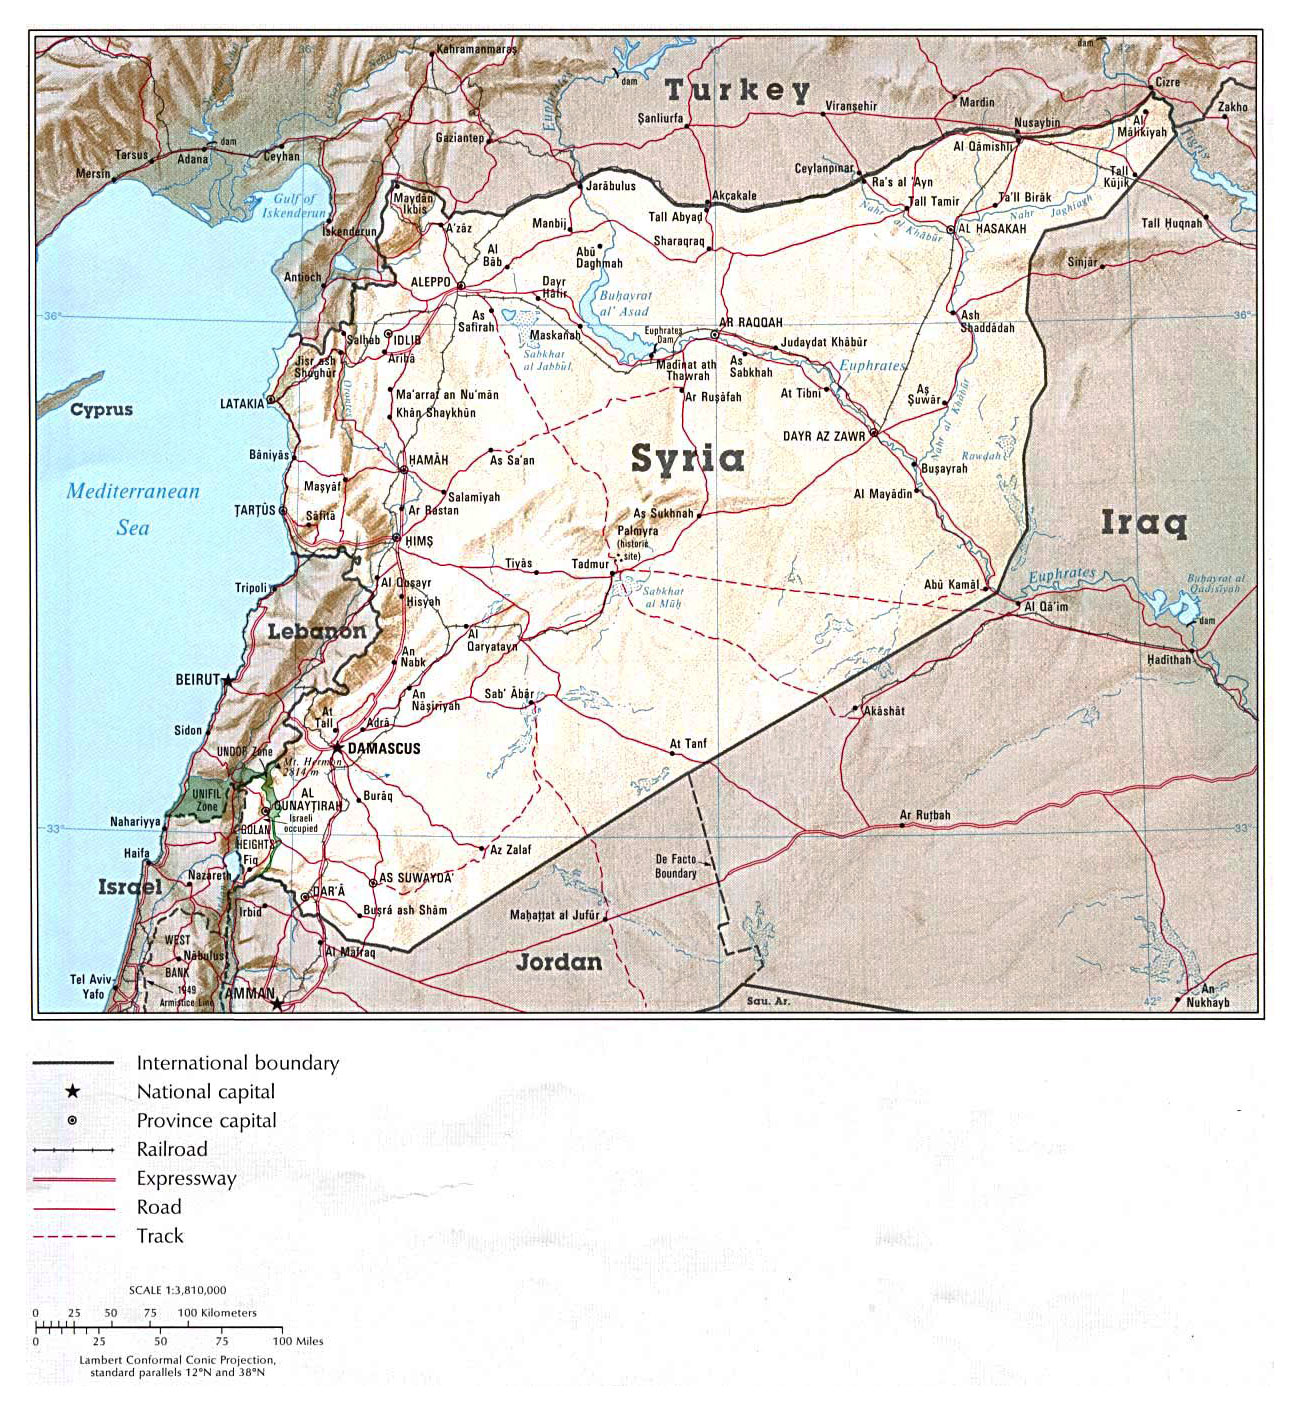 Maps of syria detailed map of syria in english tourist map of detailed political map of syria with relief roads and major cities gumiabroncs Images